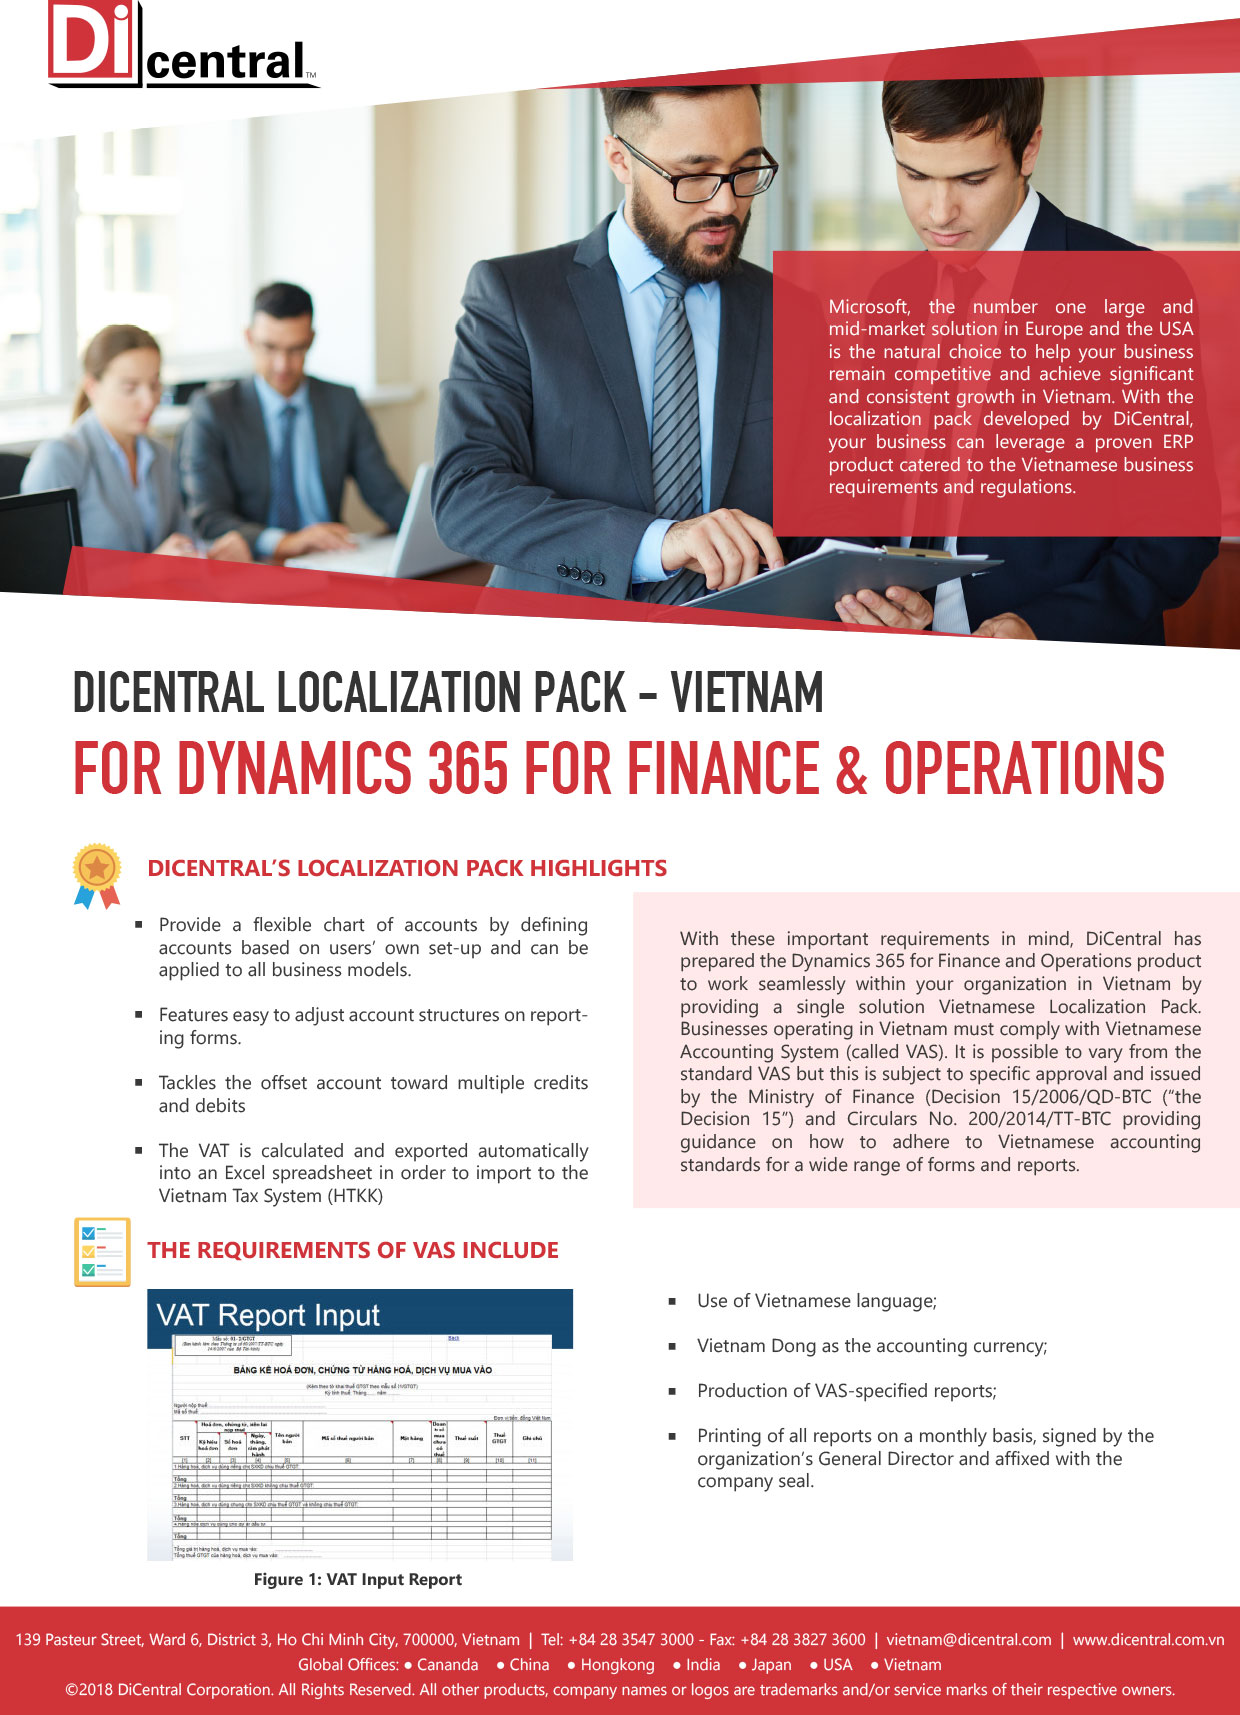 DiCentral Localization Pack - Vietnam For Dynamics 365 For Finance & Operations